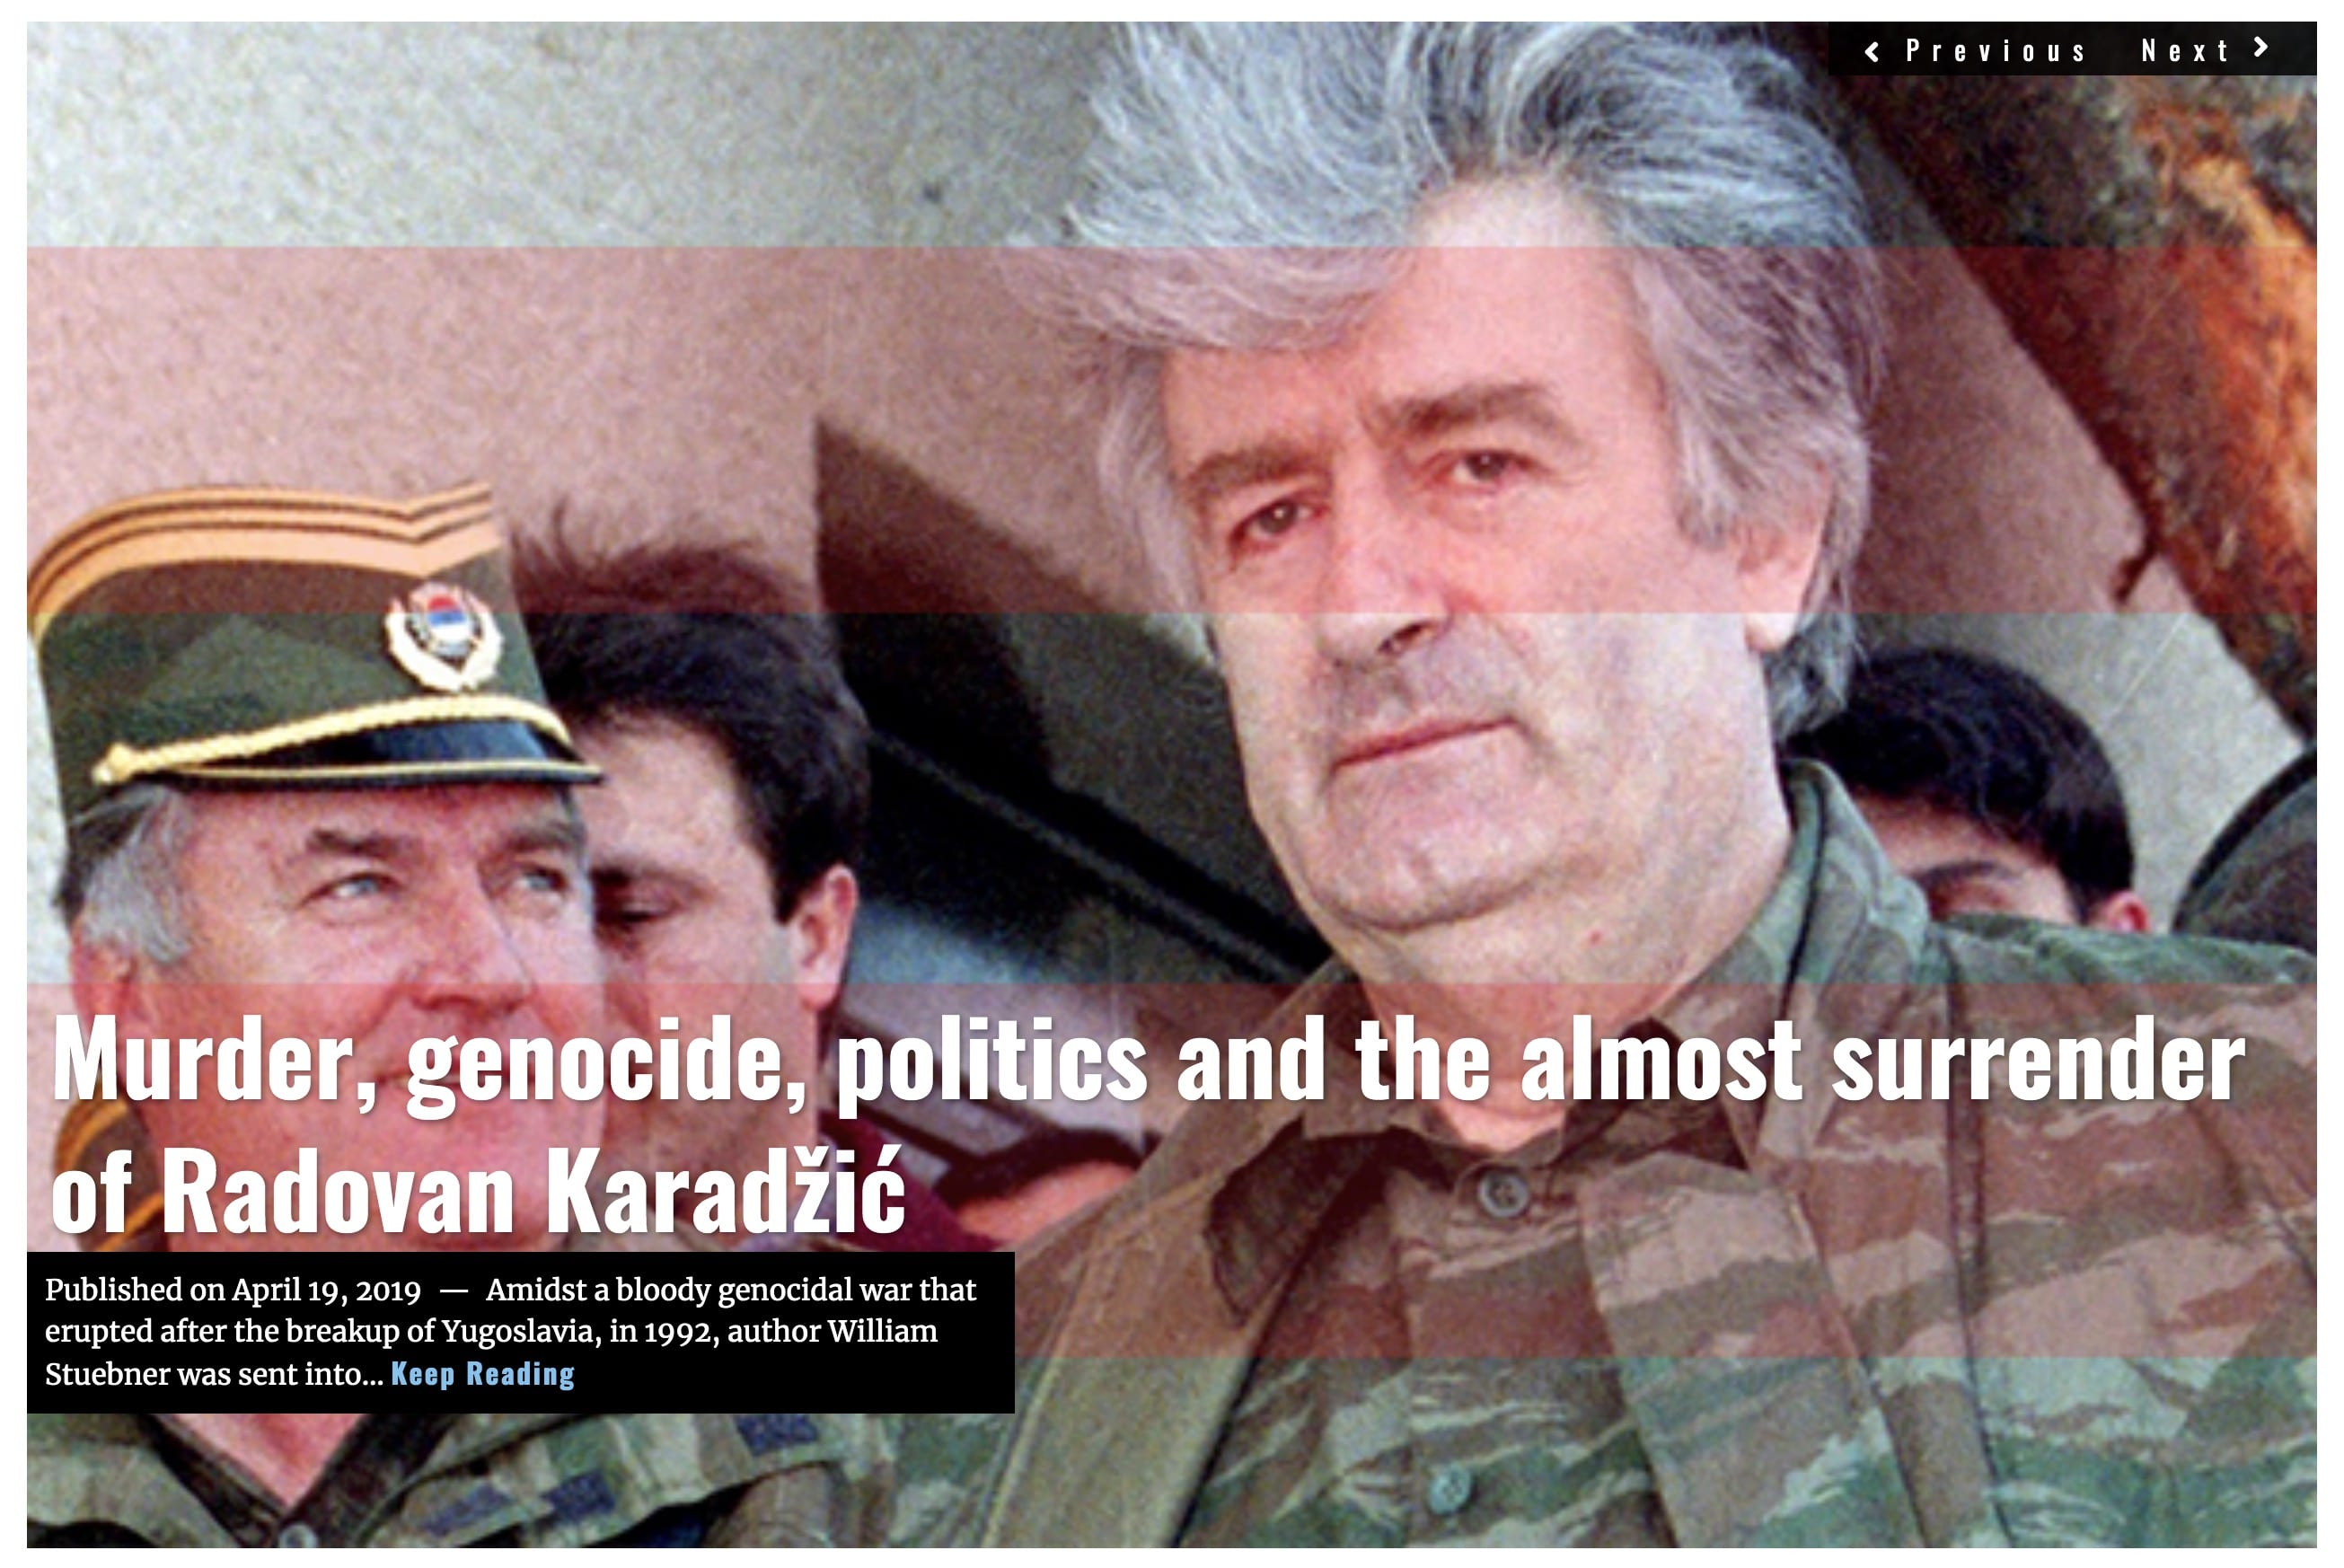 Image Lima Charlie News Headline - Radovan Karadzic - William Stuebner - APR 19 2019